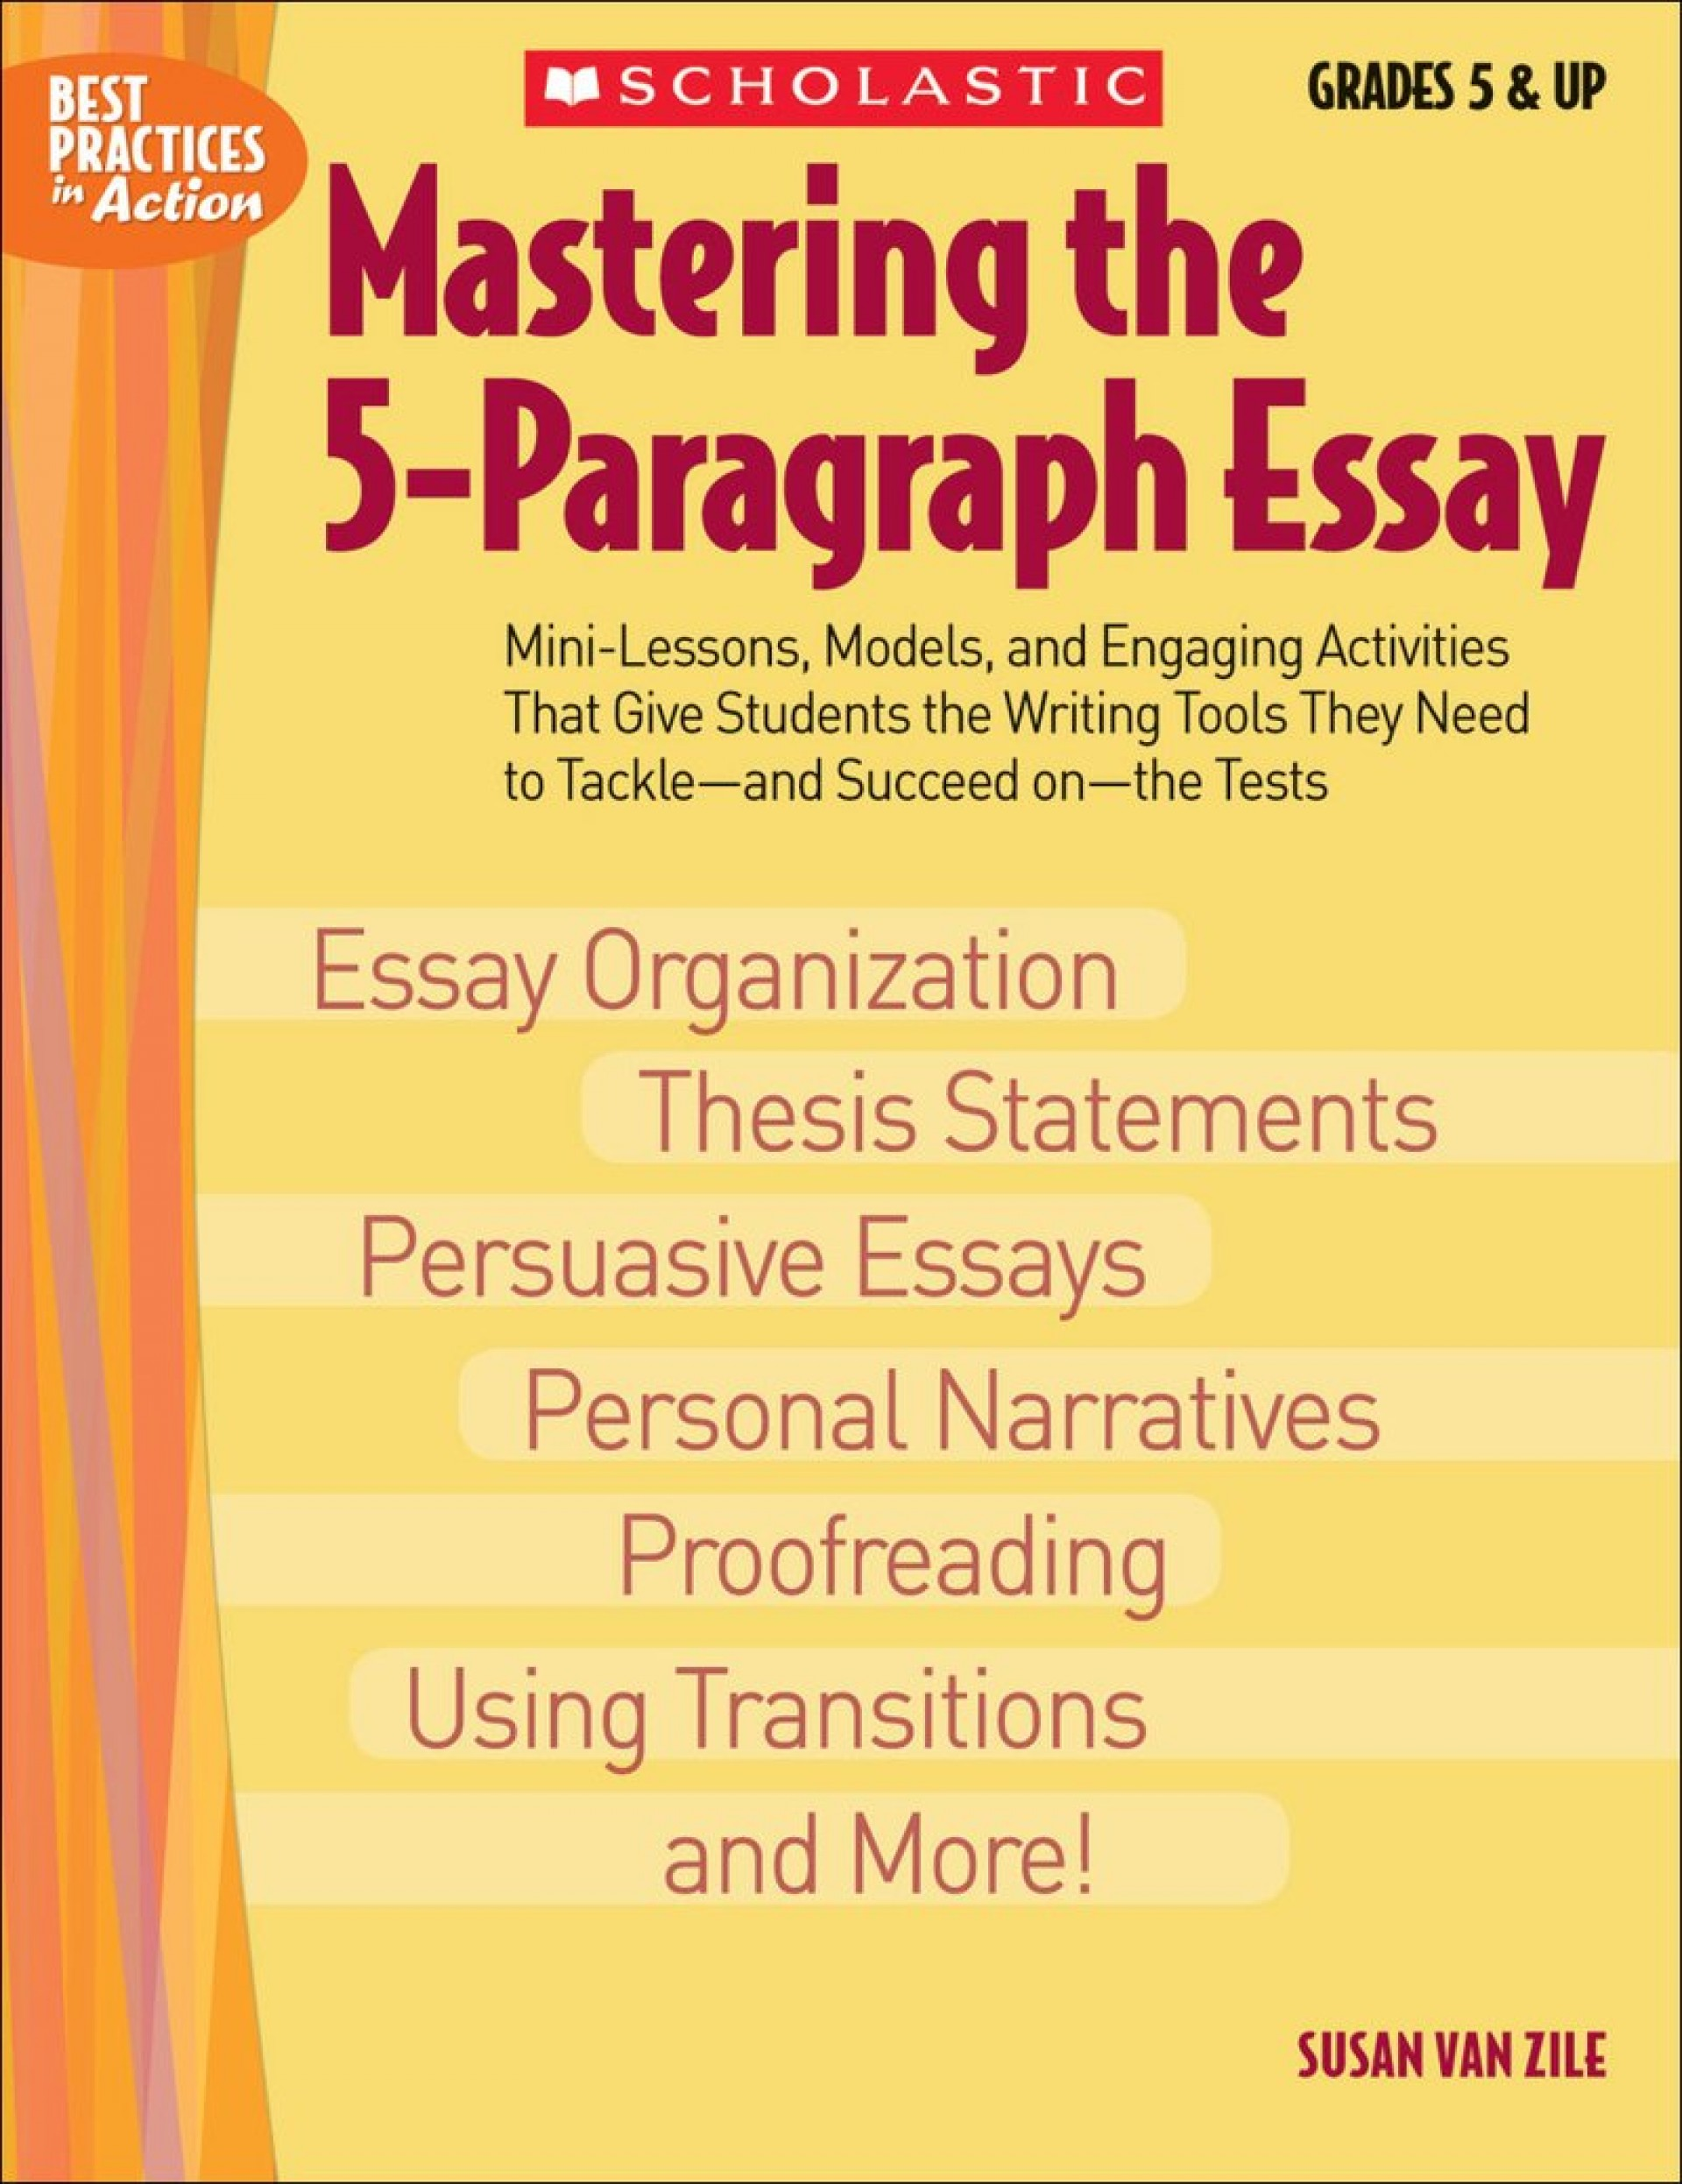 017 Paragraph Essay Example 9780439635257 Mres Singular 5 Template Graphic Organizer Middle School Pdf College 1920